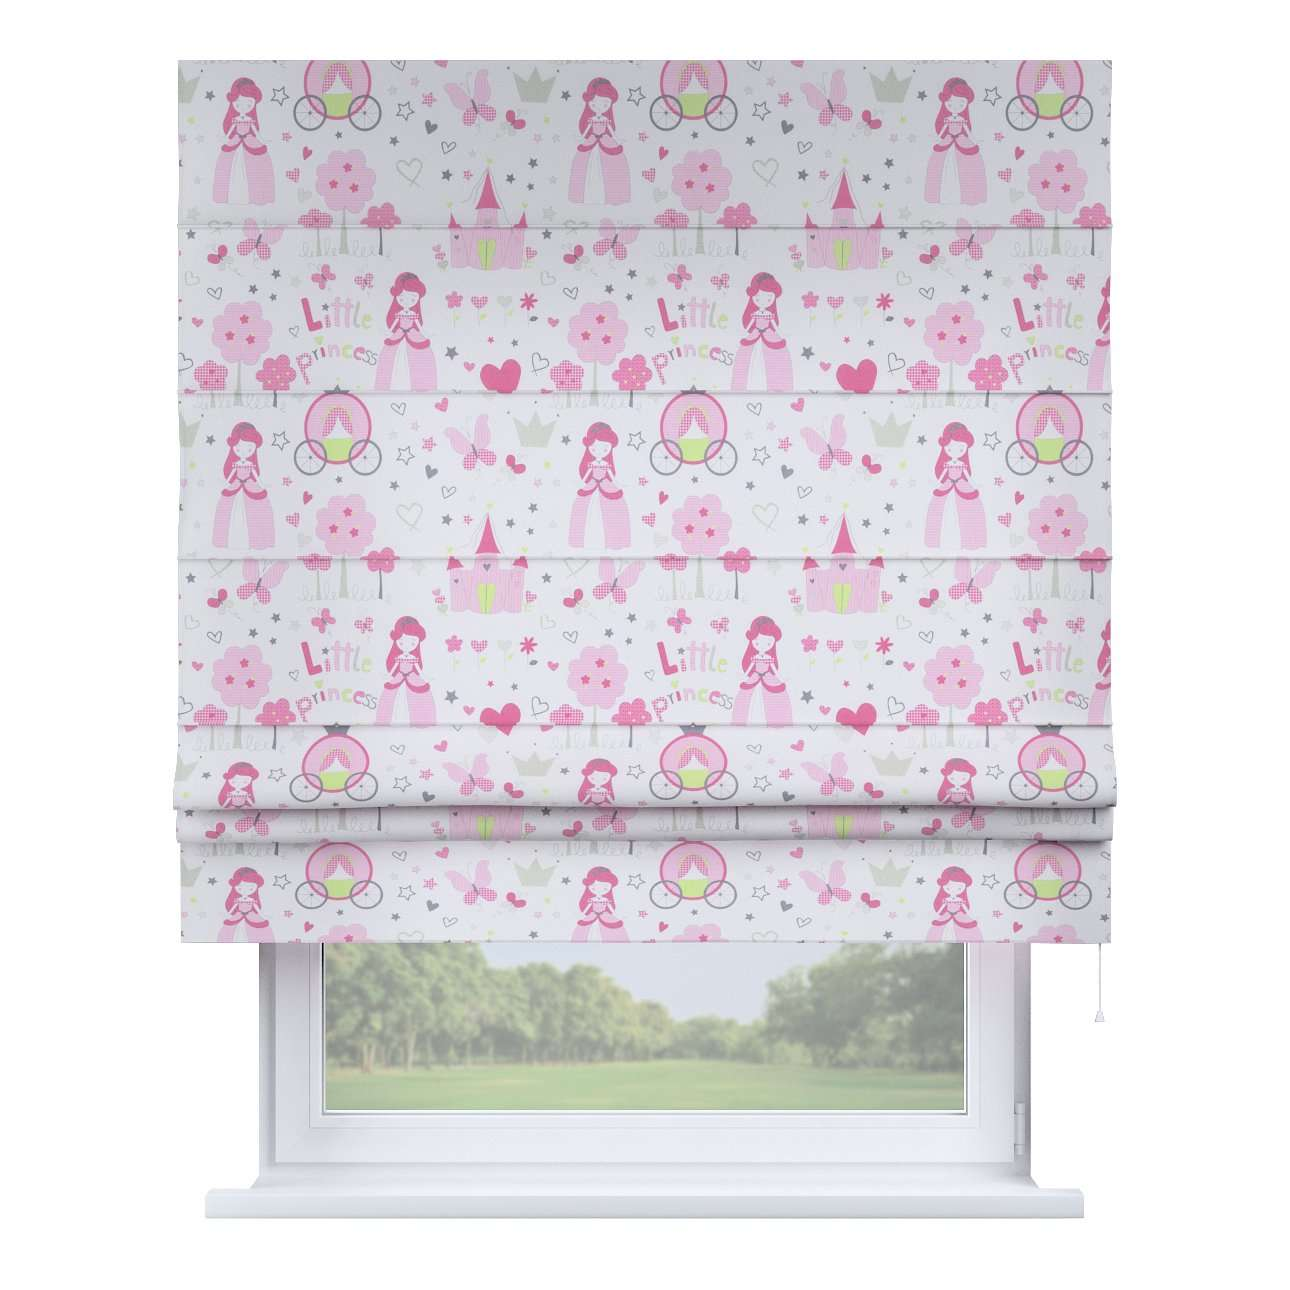 Padva roman blind  in collection Little World, fabric: 141-28